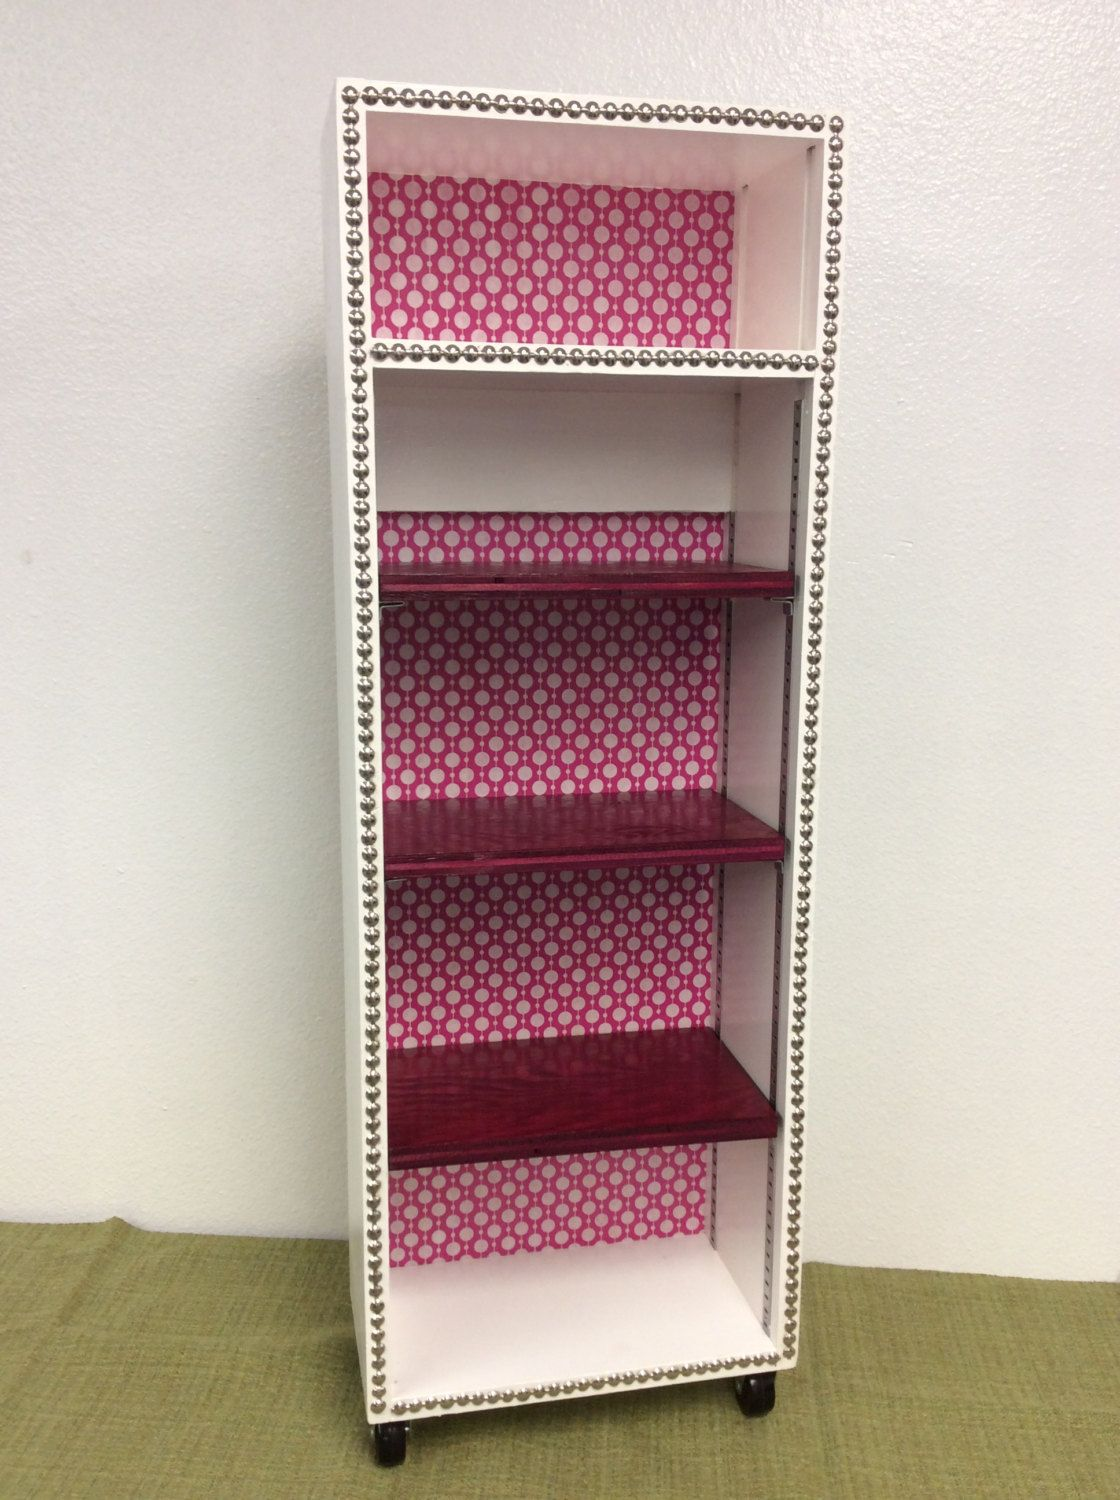 Hot Pink White Bookshelf With Nailheads Local Pick Up By Sassafrassity On Etsy